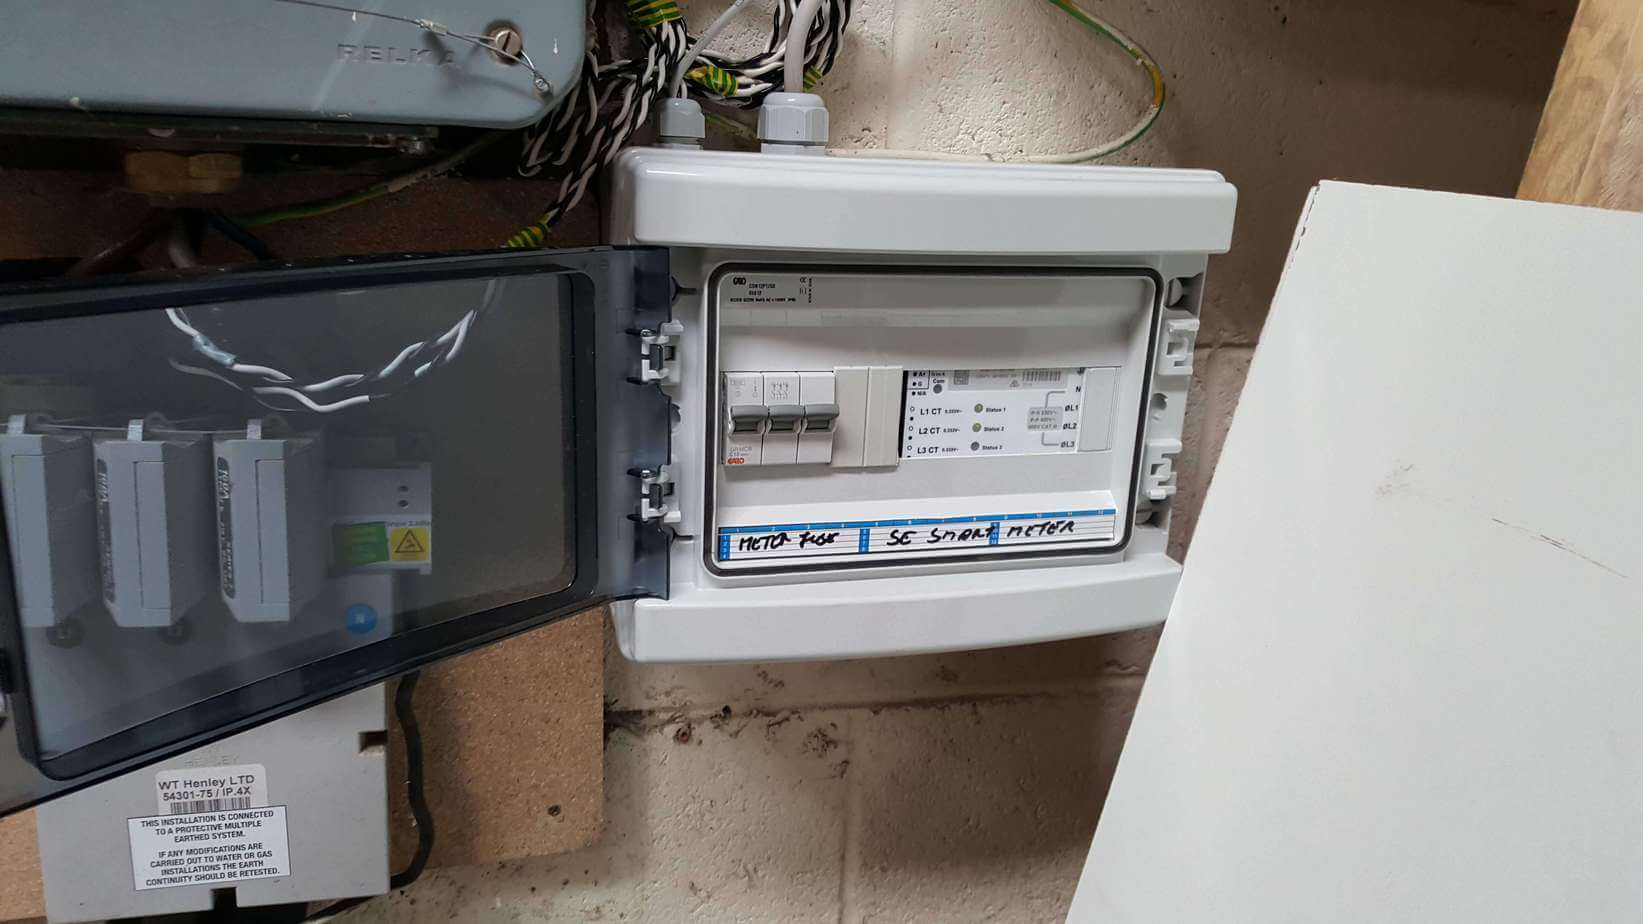 40 PV SME SolarEdge Three Phase Smart Meter Installed in Santry, Co. Dublin